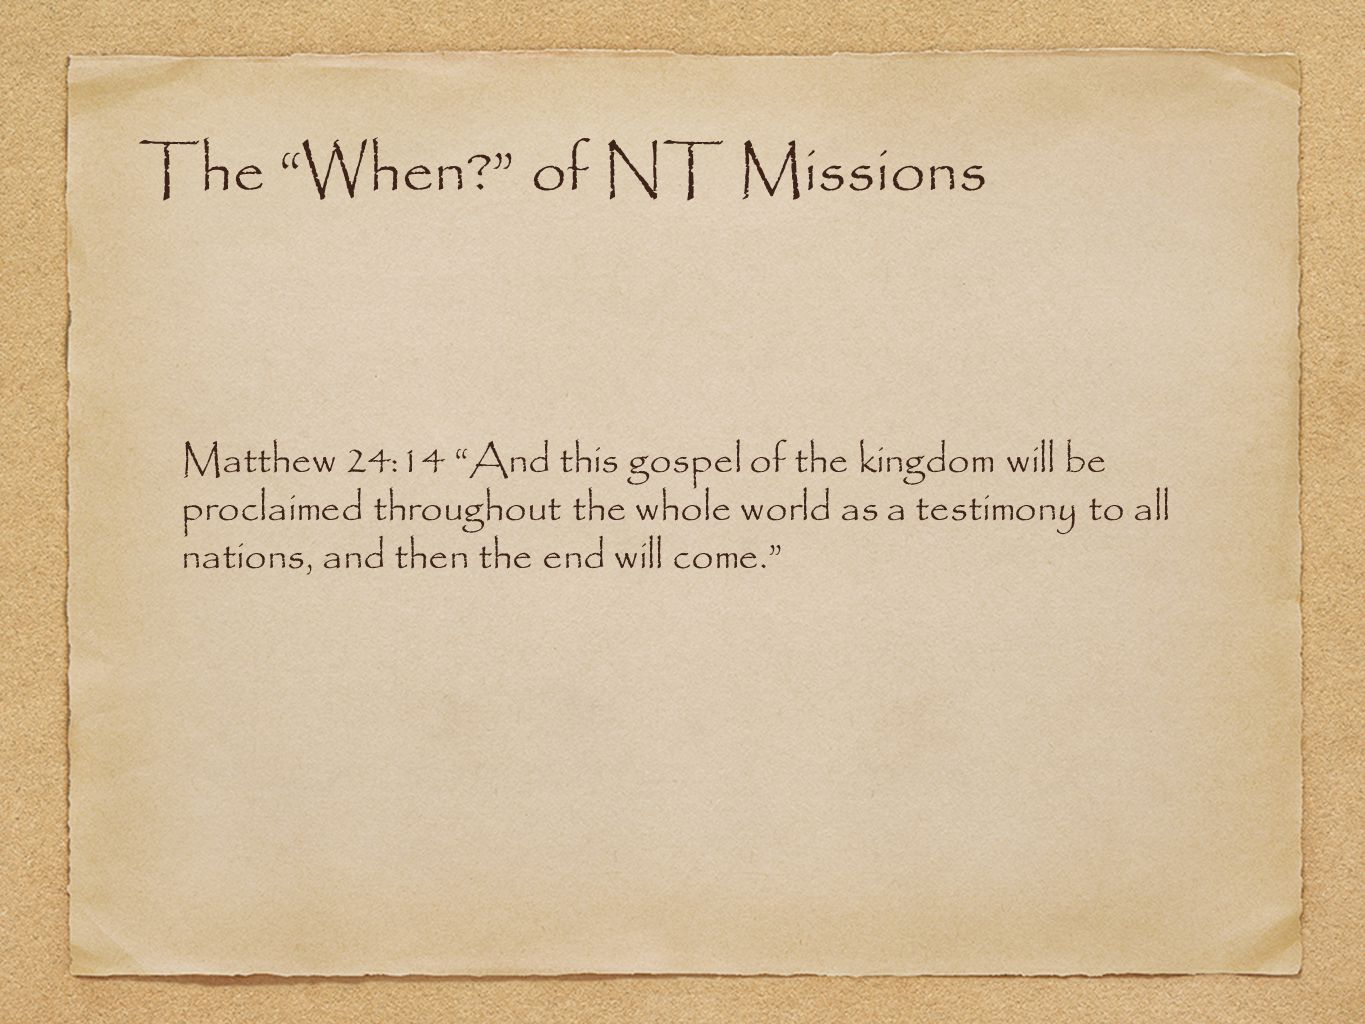 The When? of NT Missions Matthew 24:14 And this gospel of the kingdom will be proclaimed throughout the whole world as a testimony to all nations, and then the end will come.